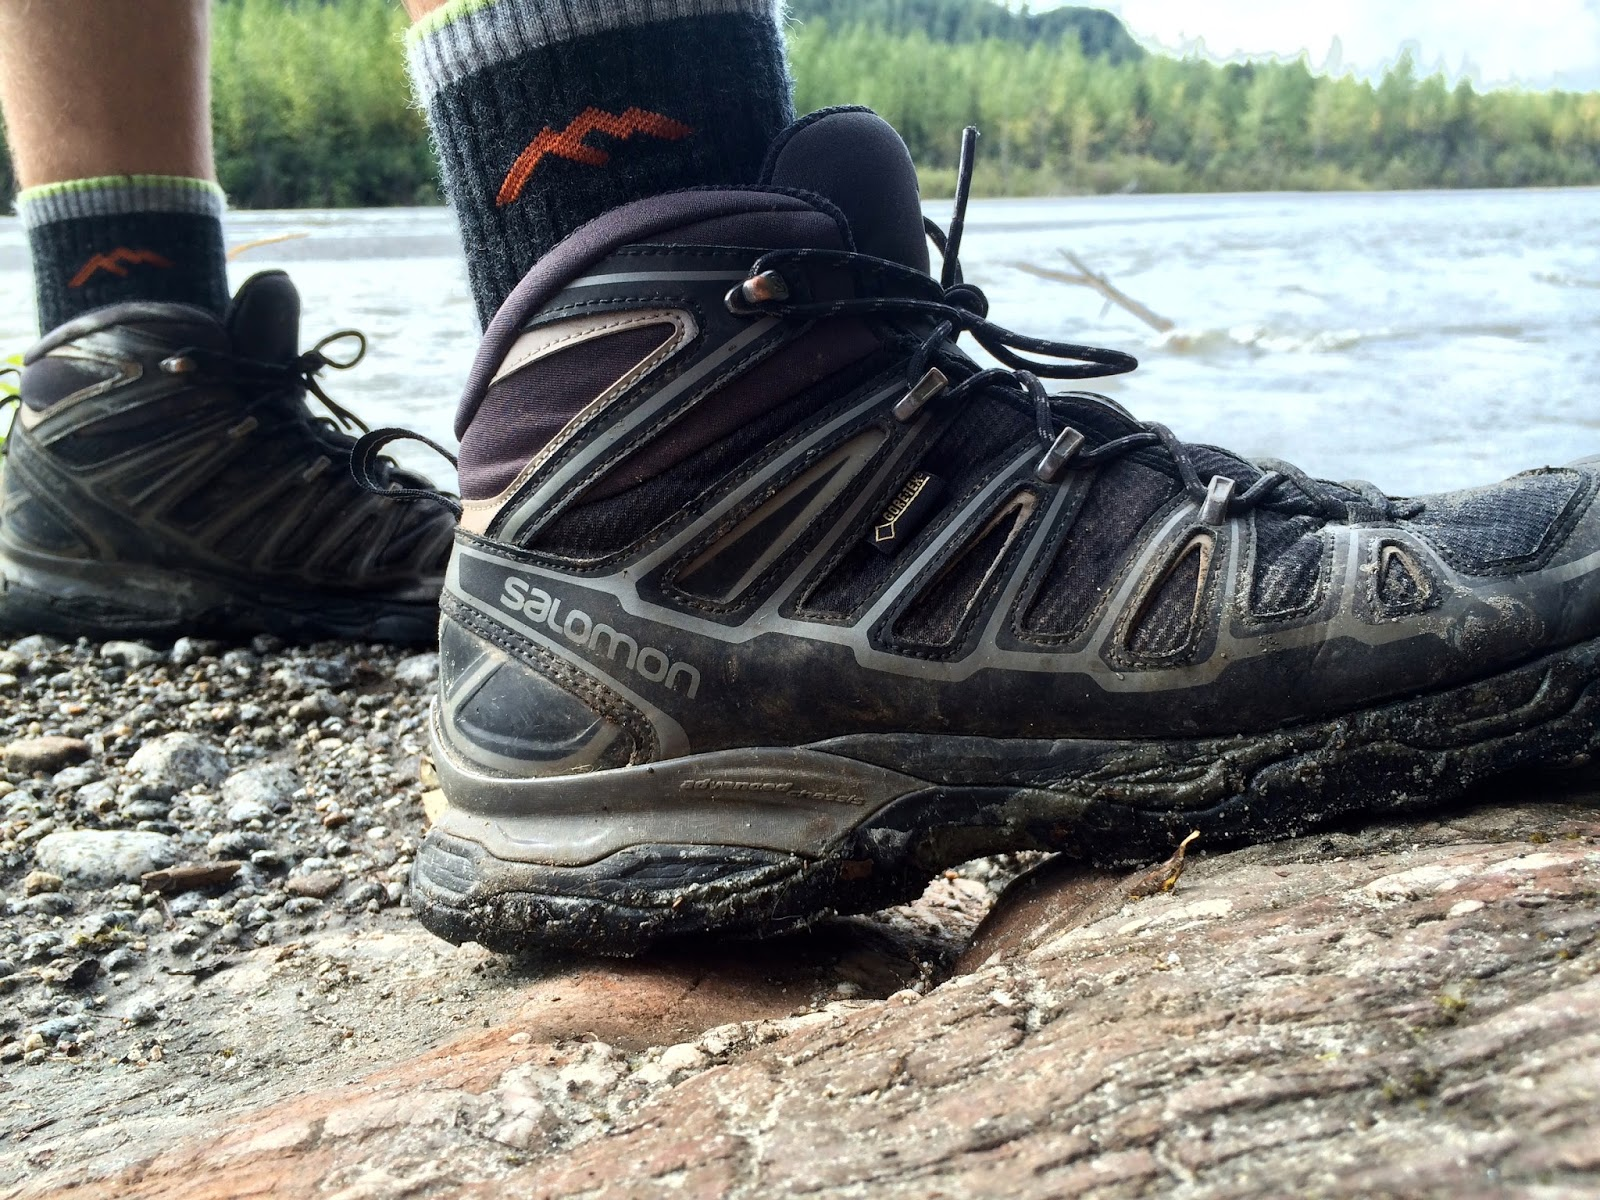 another chance 1389a 82b79 Chris's Gear Review: Salomon X Ultra Mid II GTX Hiking Boots